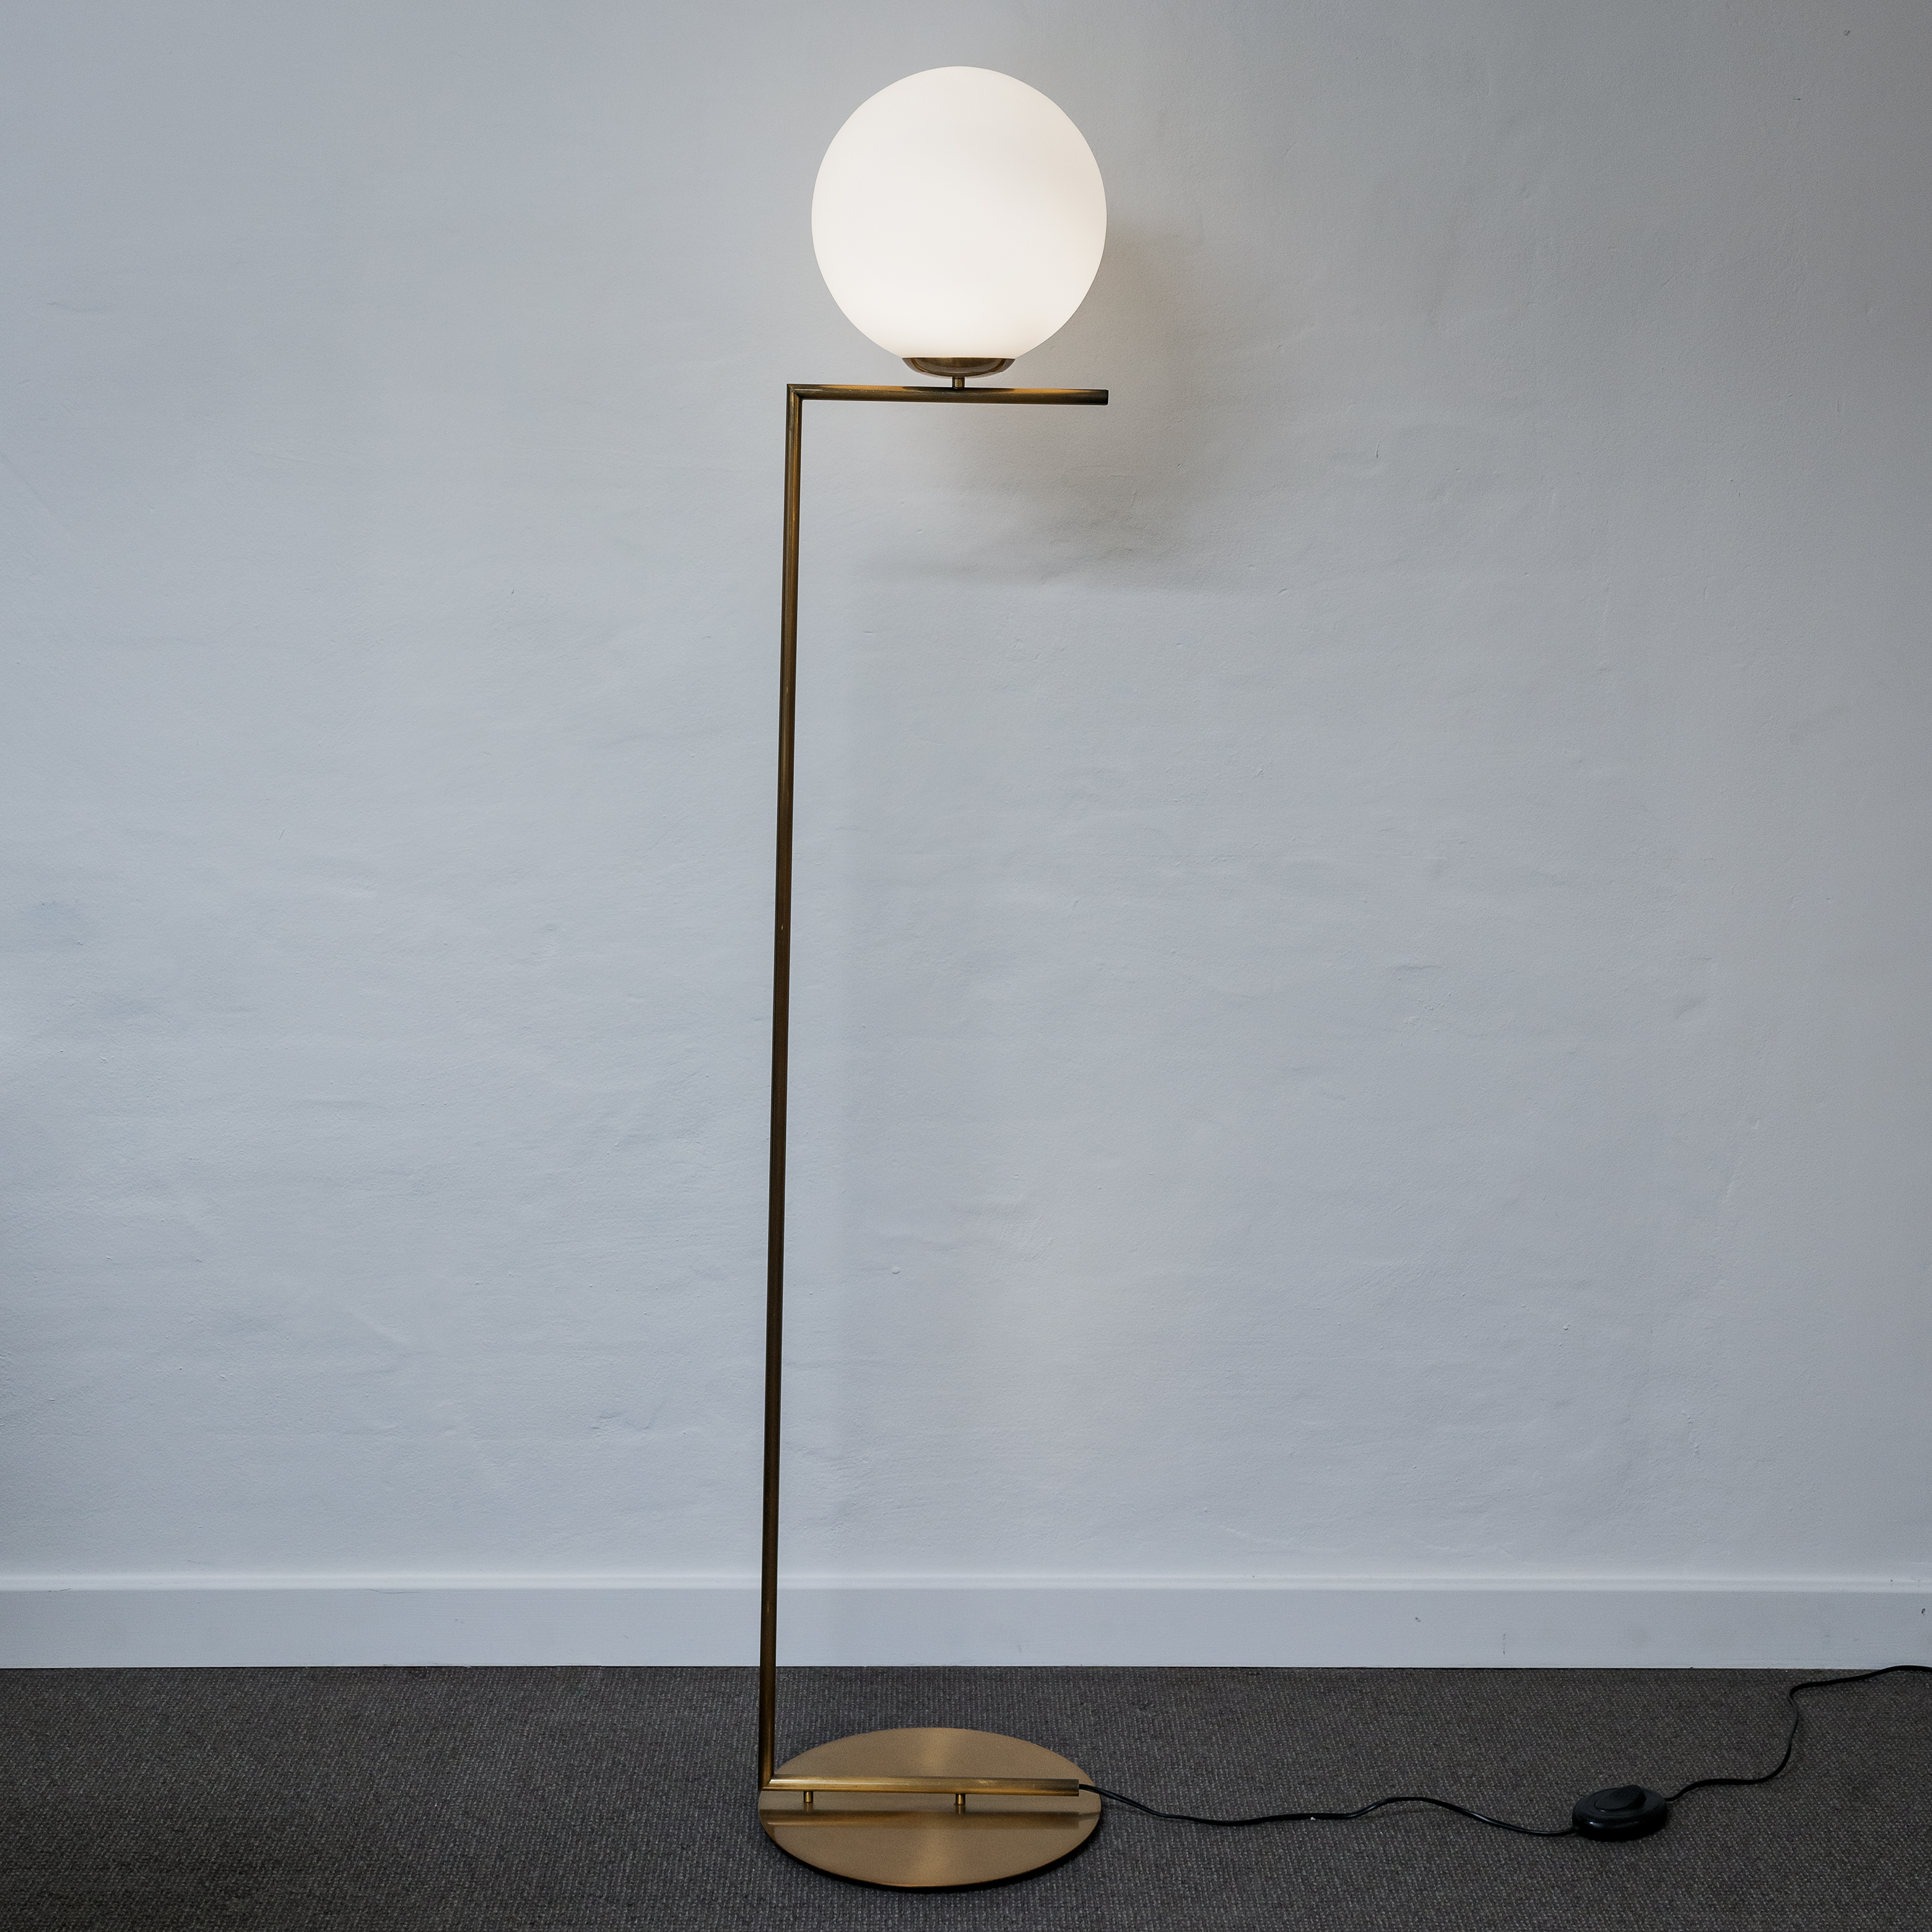 Replica flos ic t1 floor lamp z two lights aloadofball Choice Image